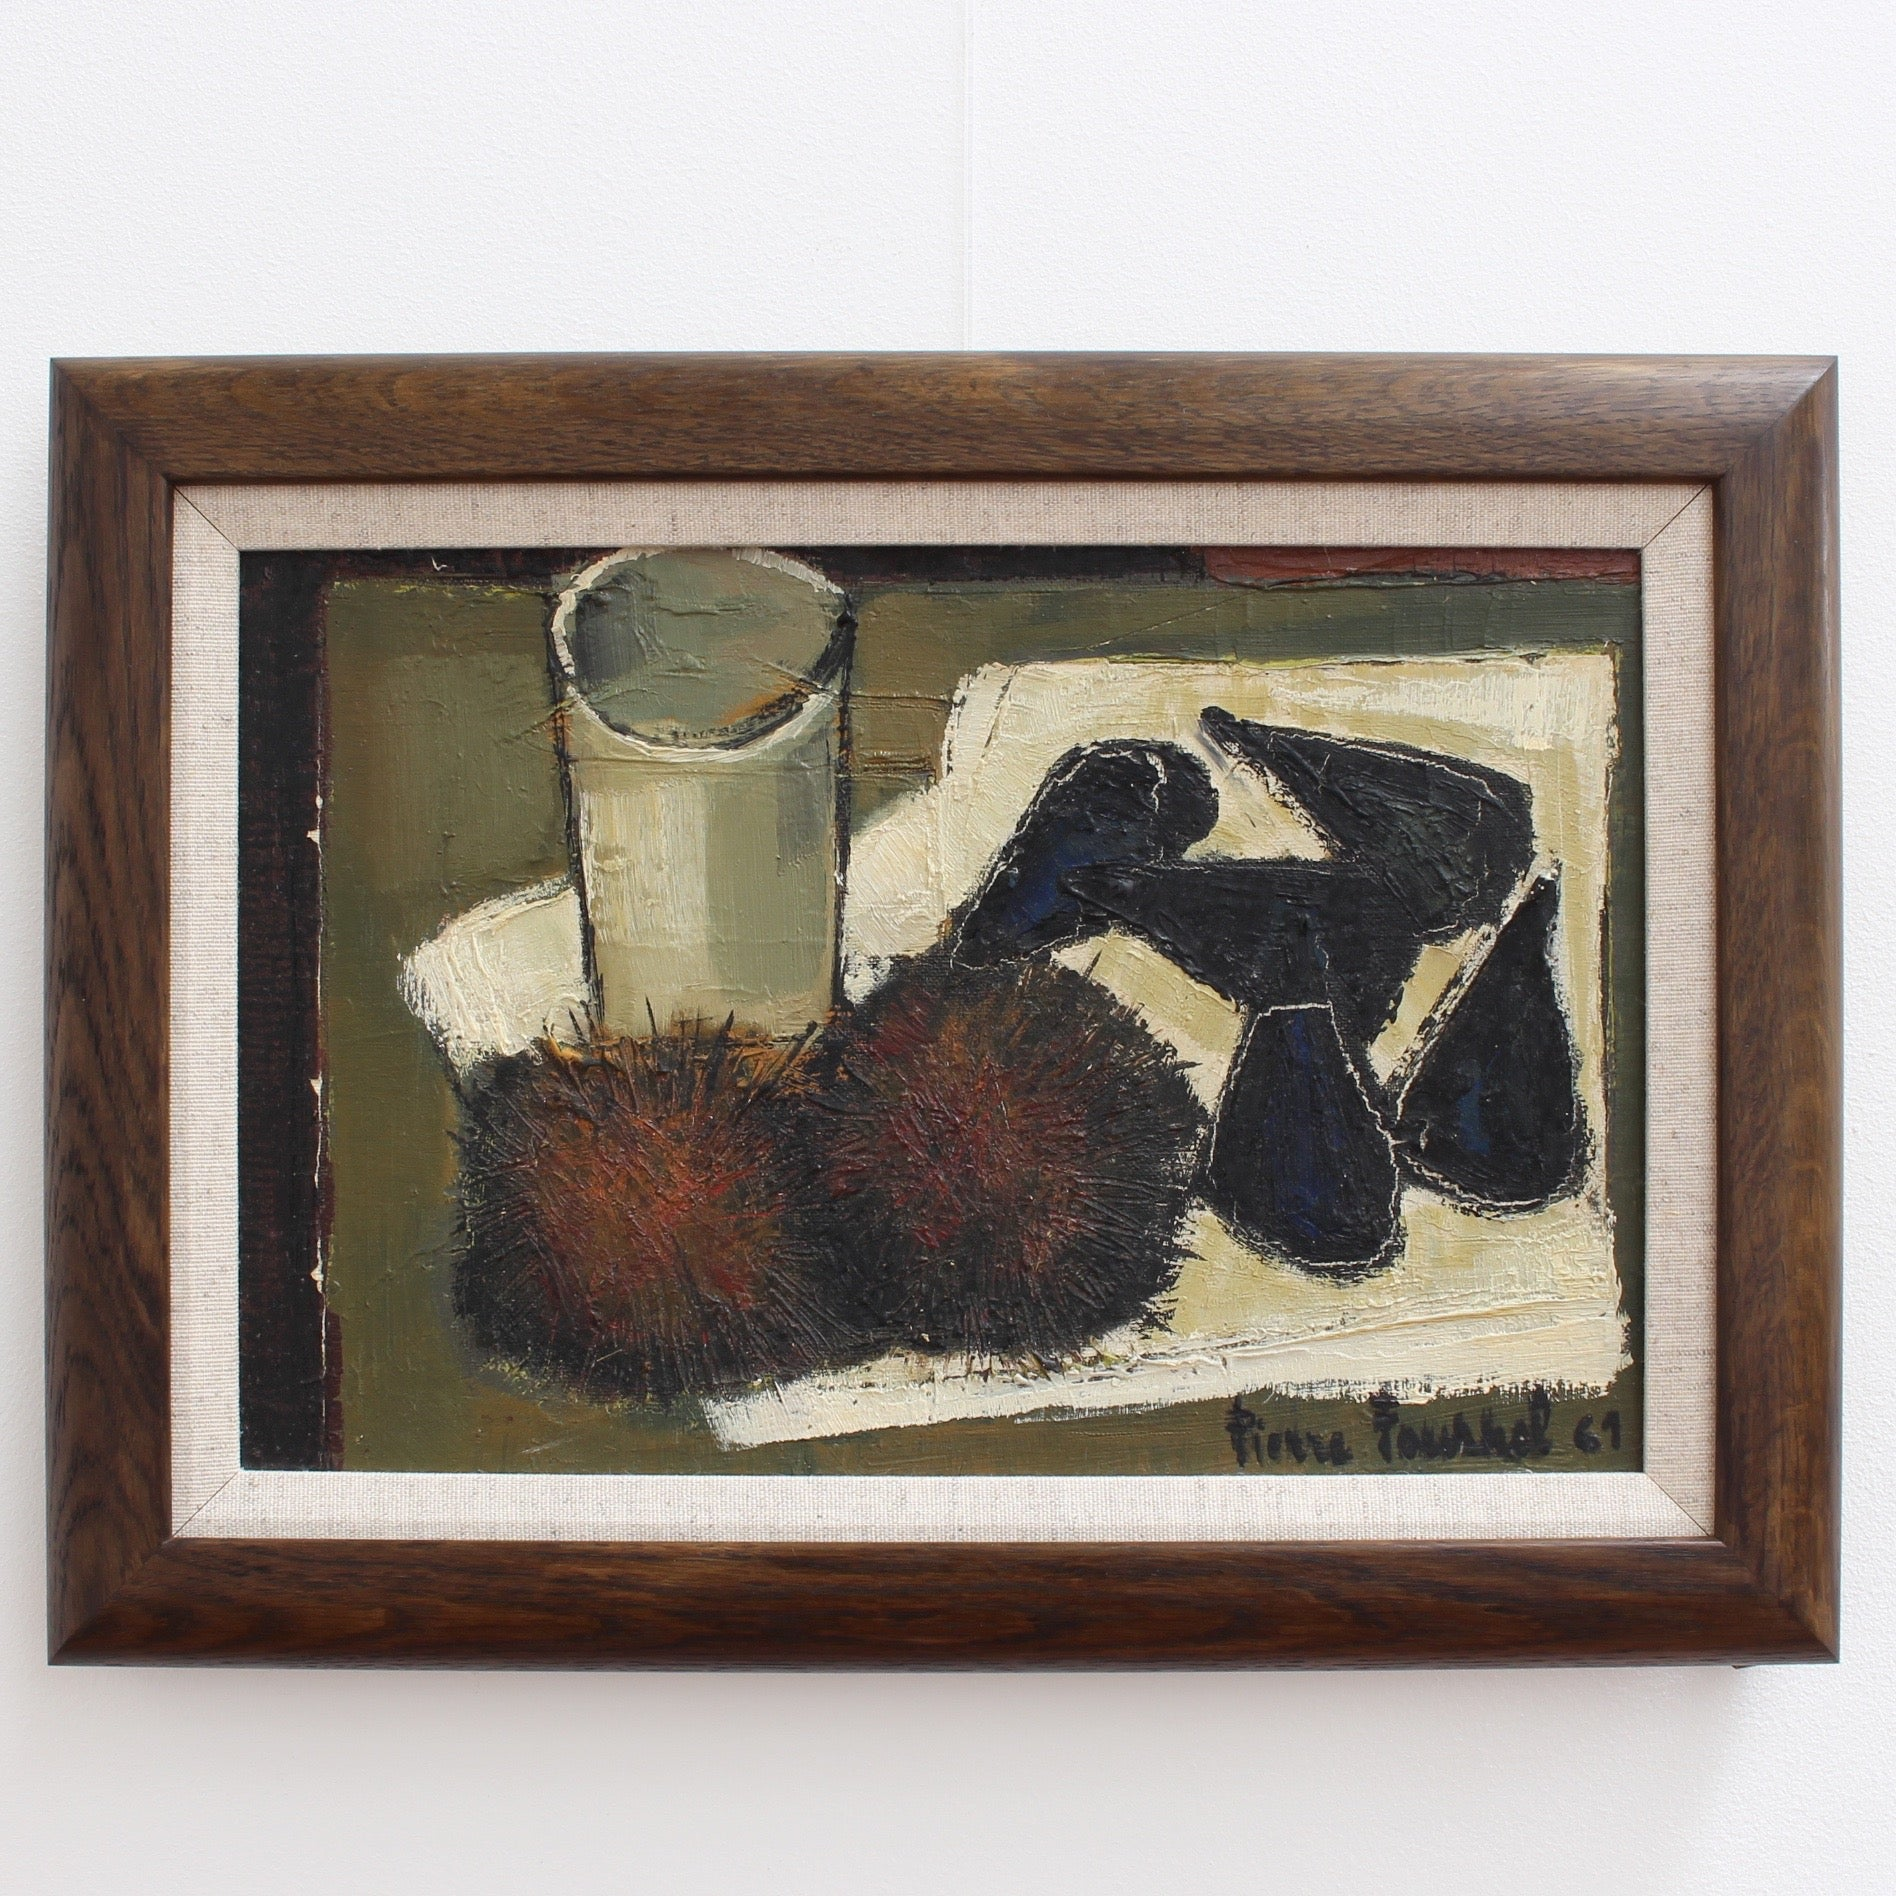 'Still Life with Sea Urchins and Mussels' by Pierre Fournel (1961)